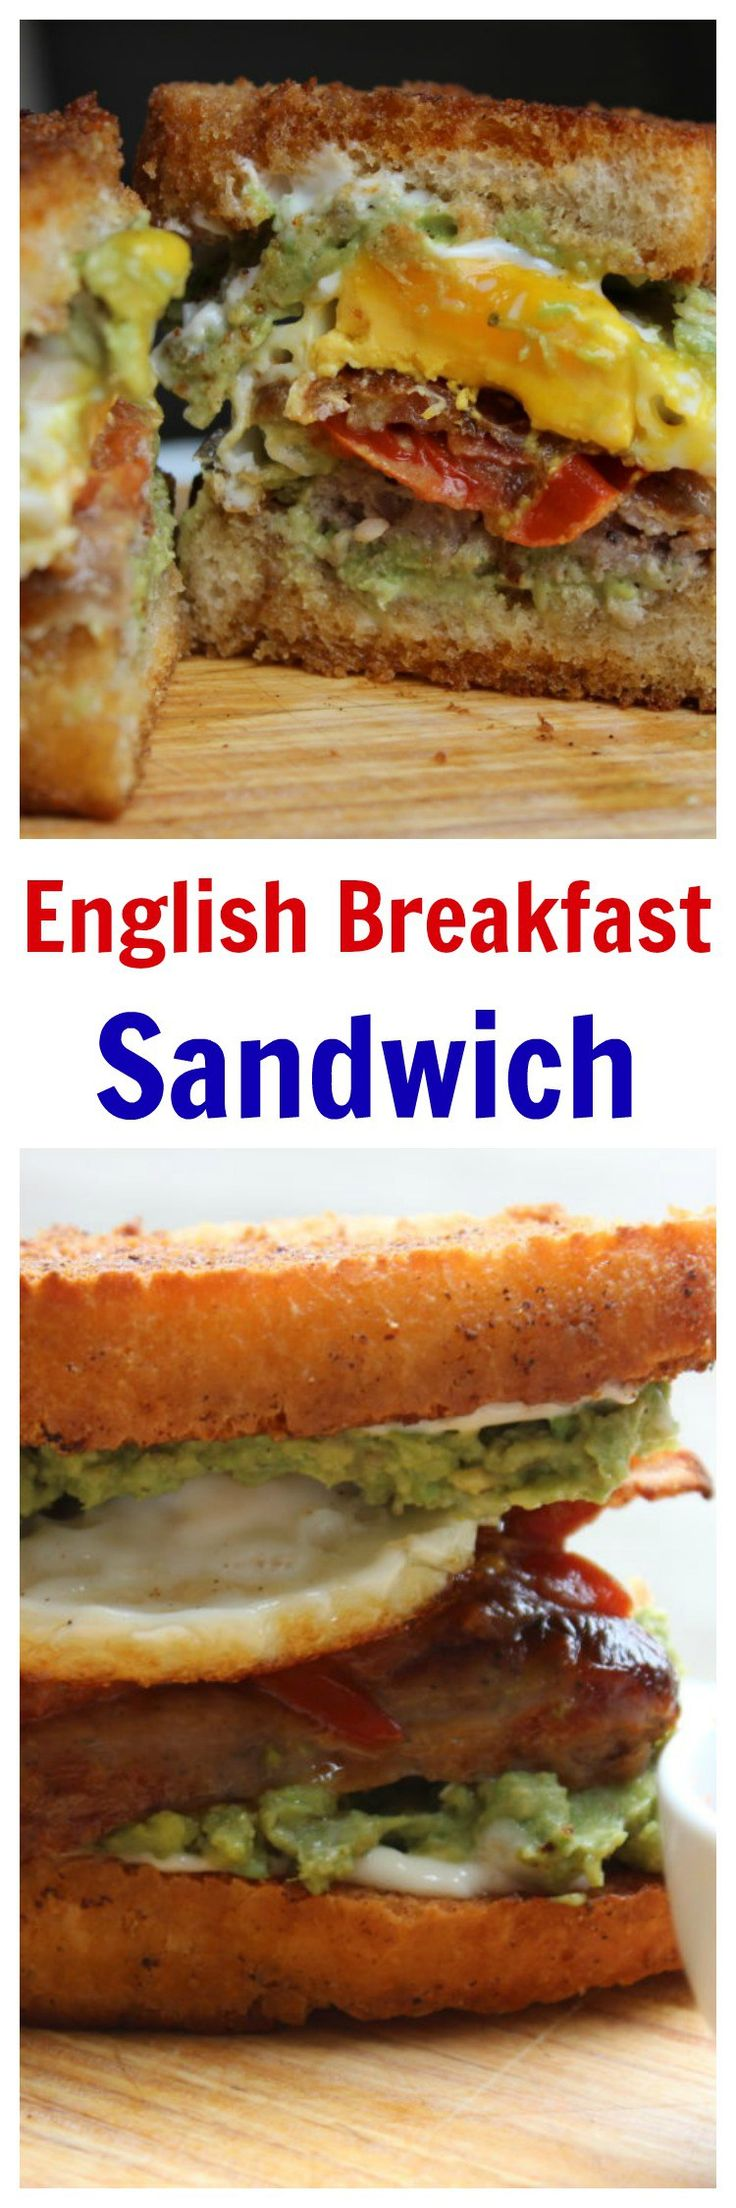 English Breakfast Sandwich. This full English breakfast in a sandwich ...